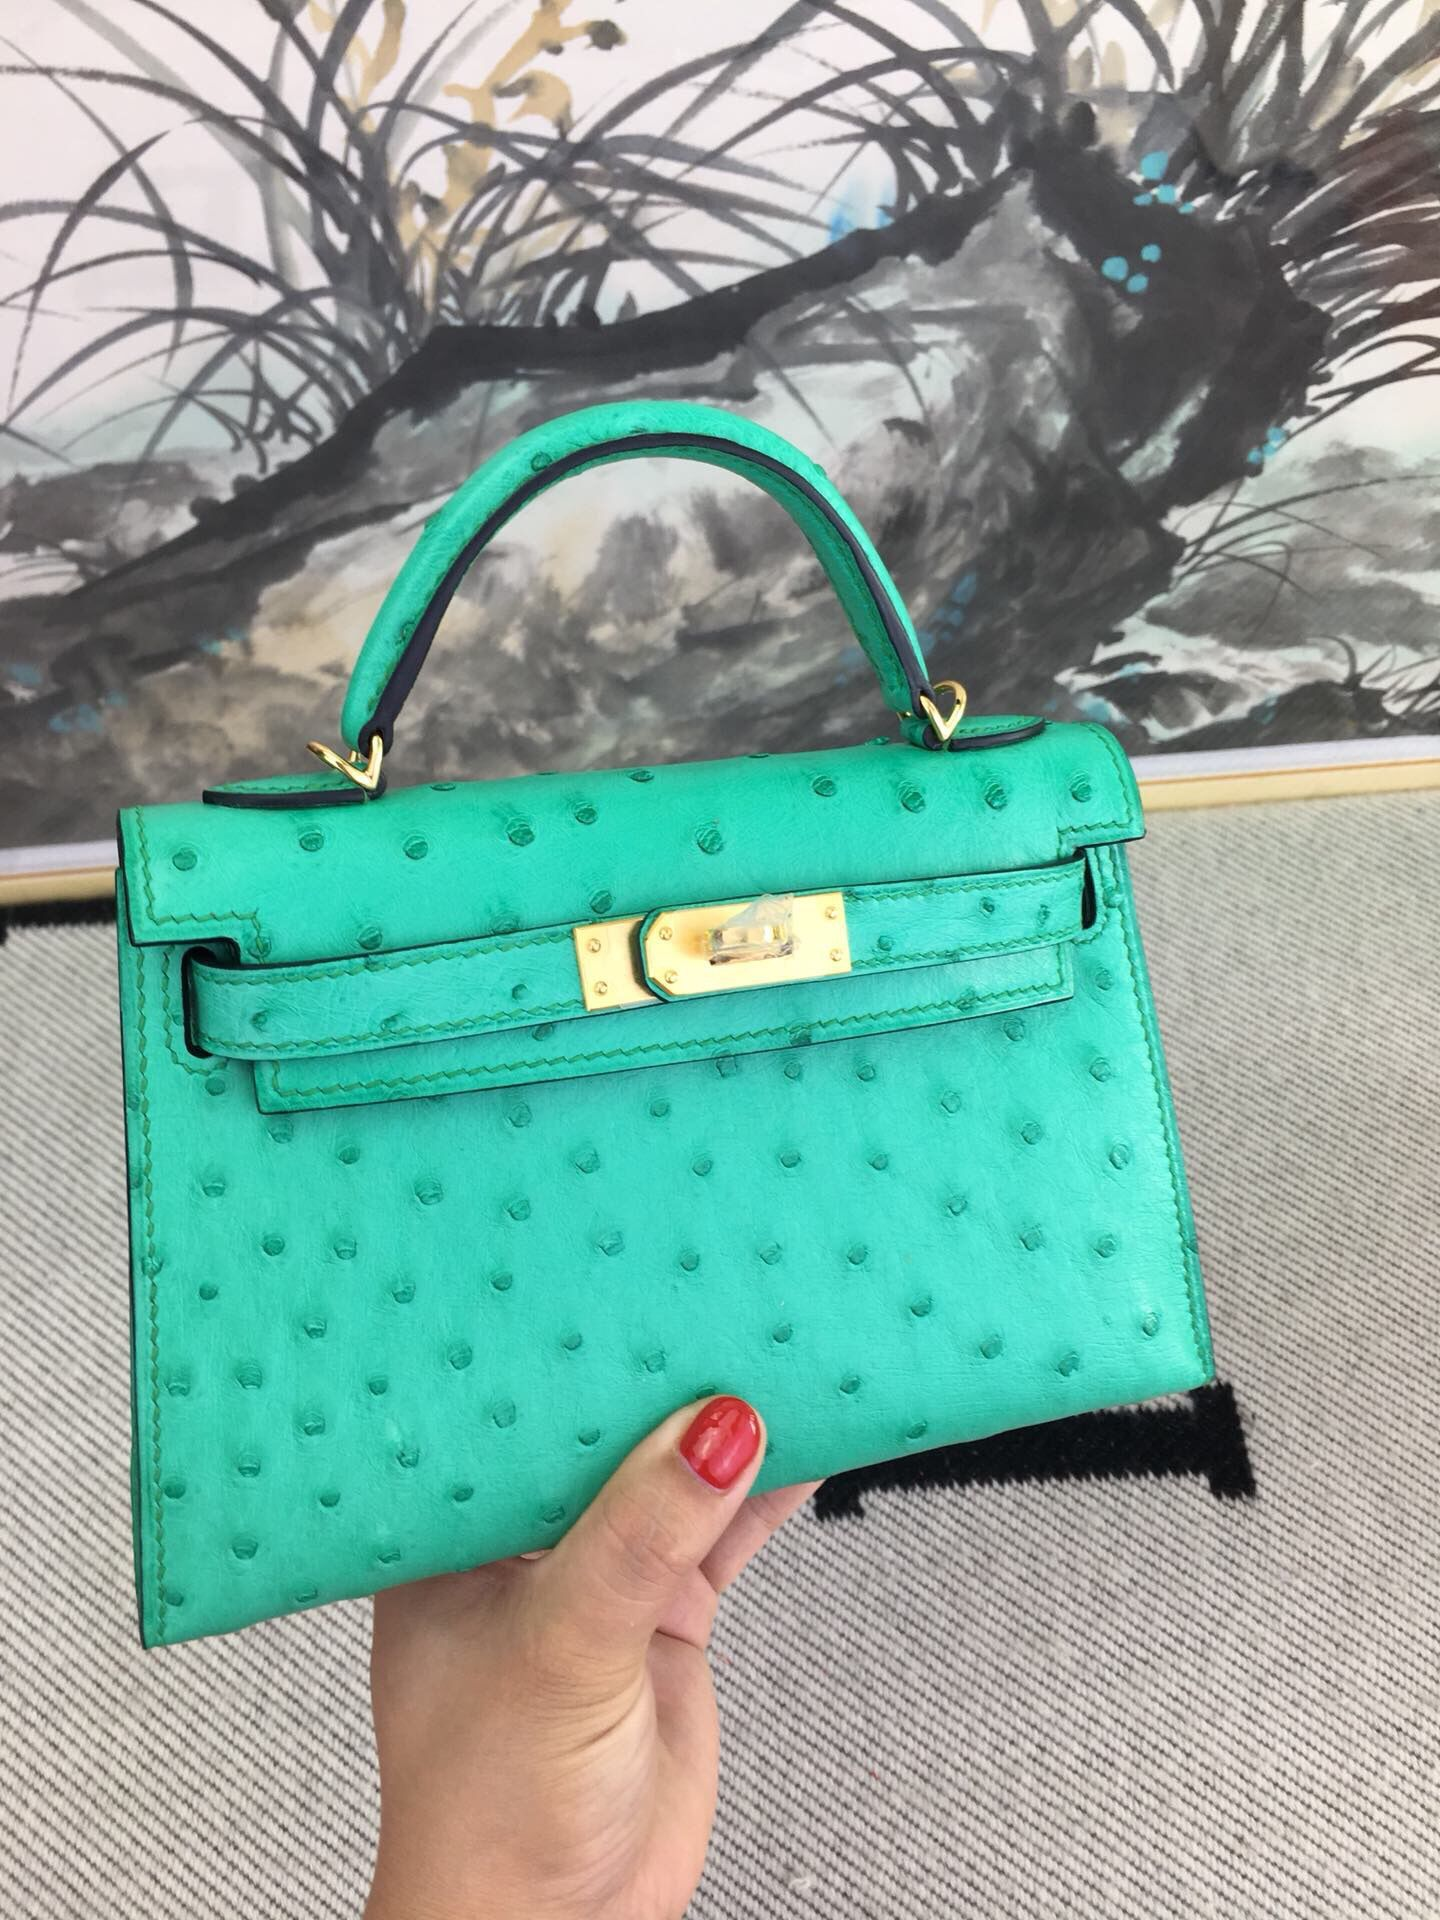 Hermes original ostrich leather mini kelly bag K001 green